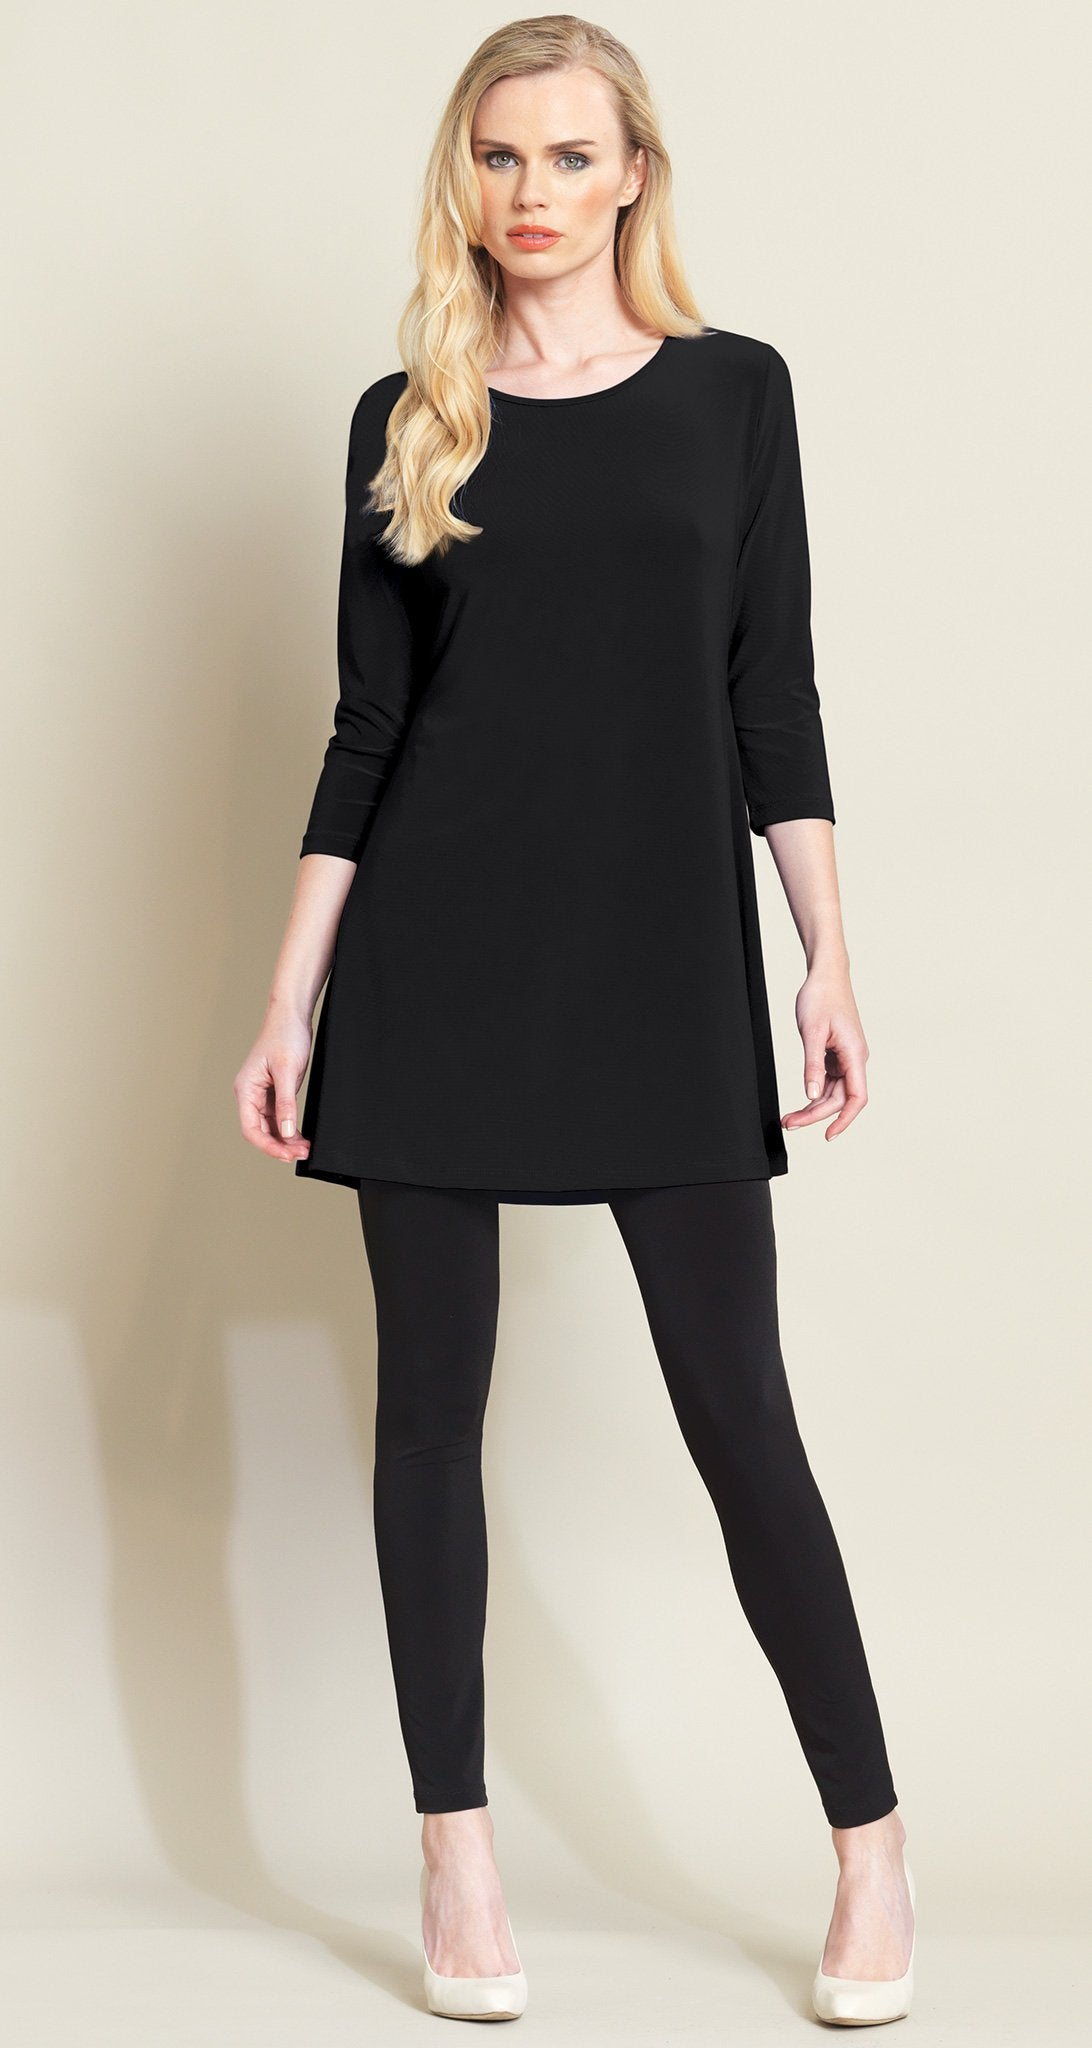 Square Cut Out Solid Tunic - 3 Colors